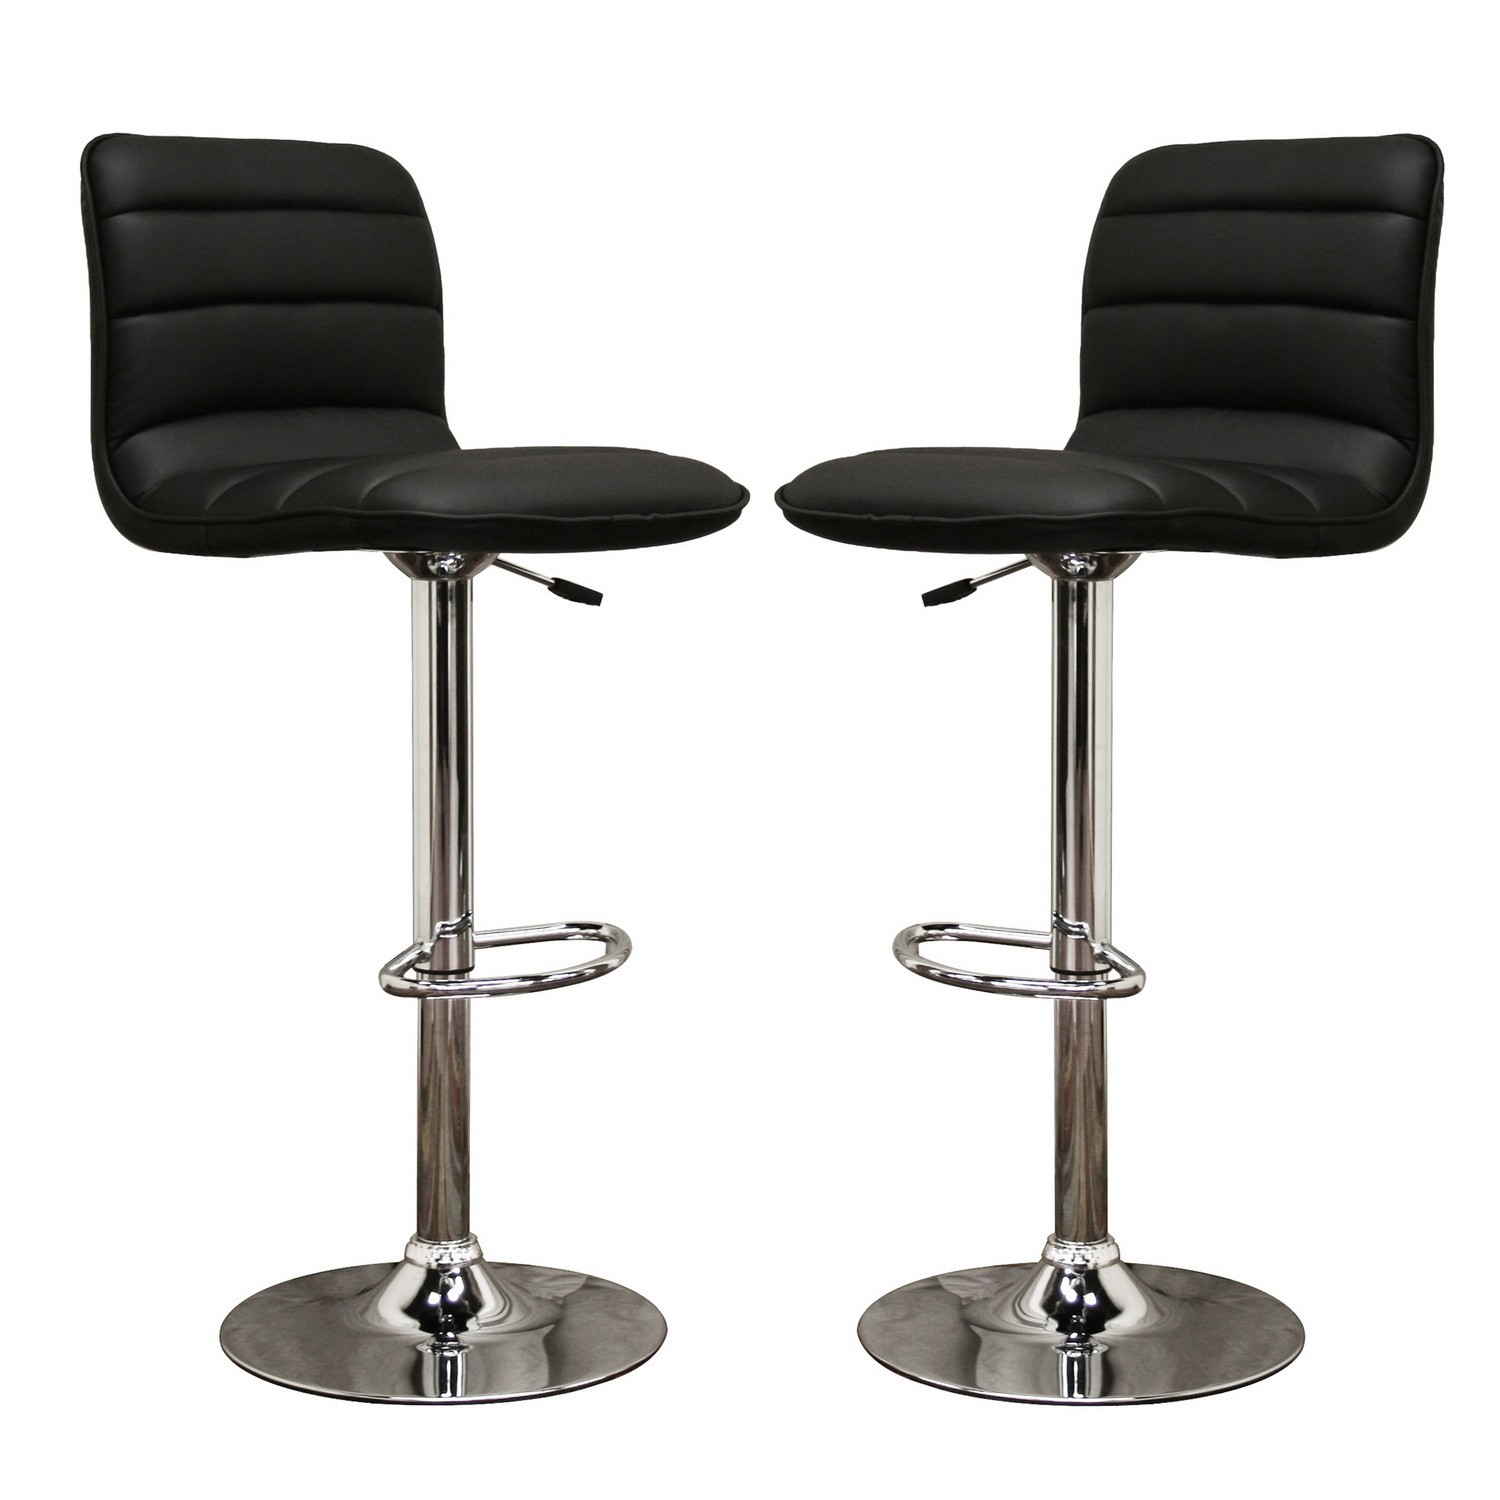 Marvellous leather bar stools for home furniture with leather swivel bar stools